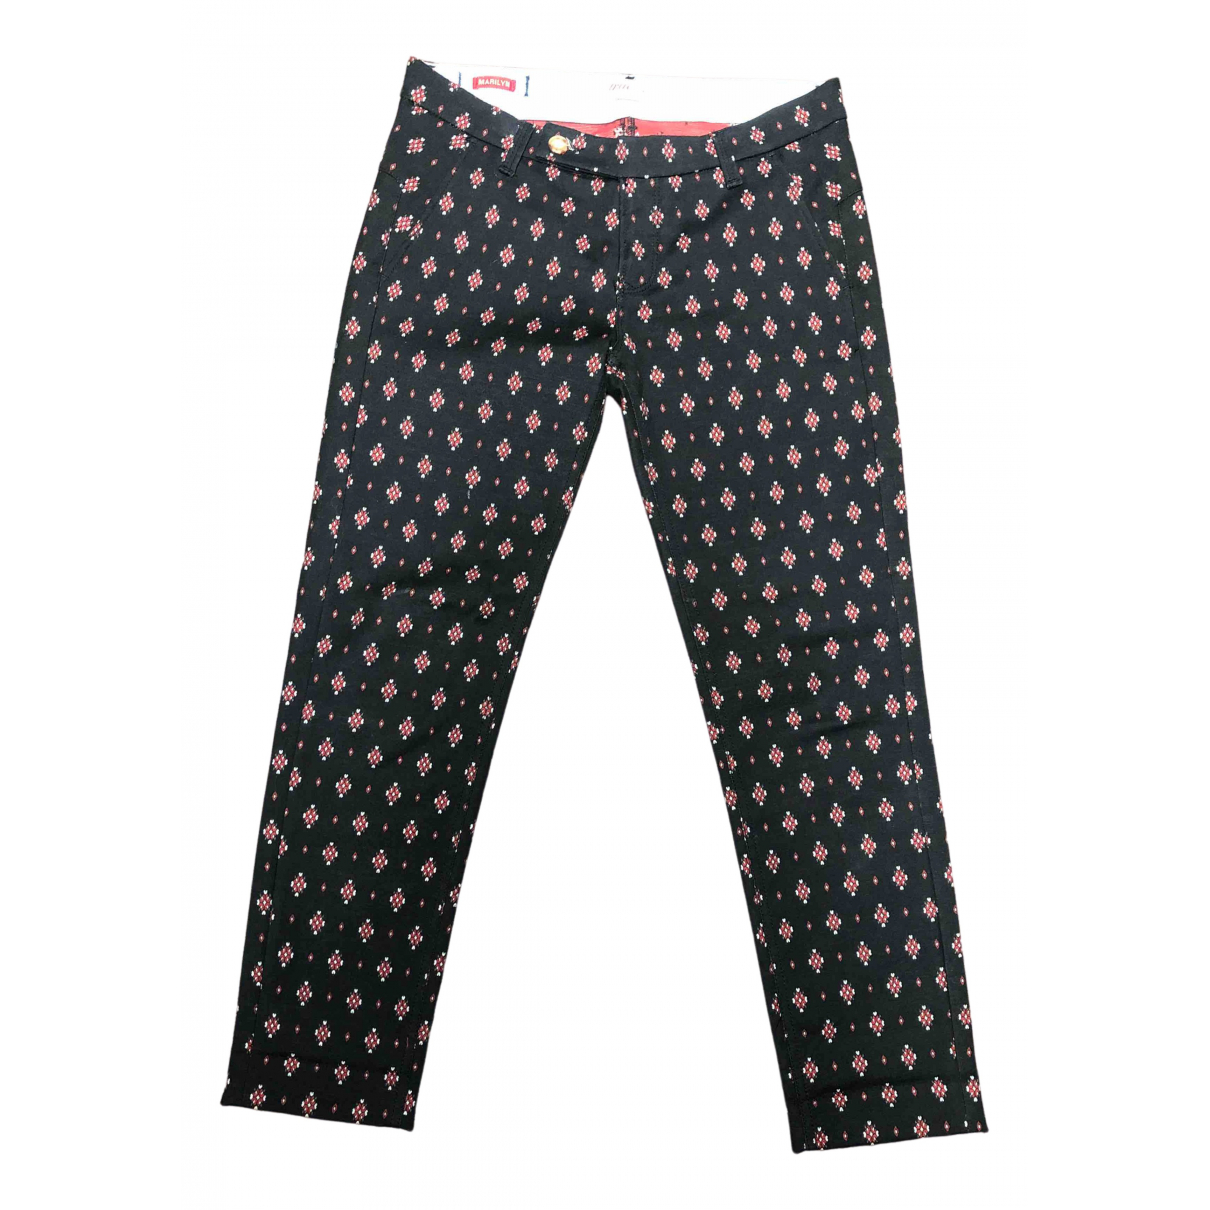 True Nyc \N Black Cotton Trousers for Women 40 IT